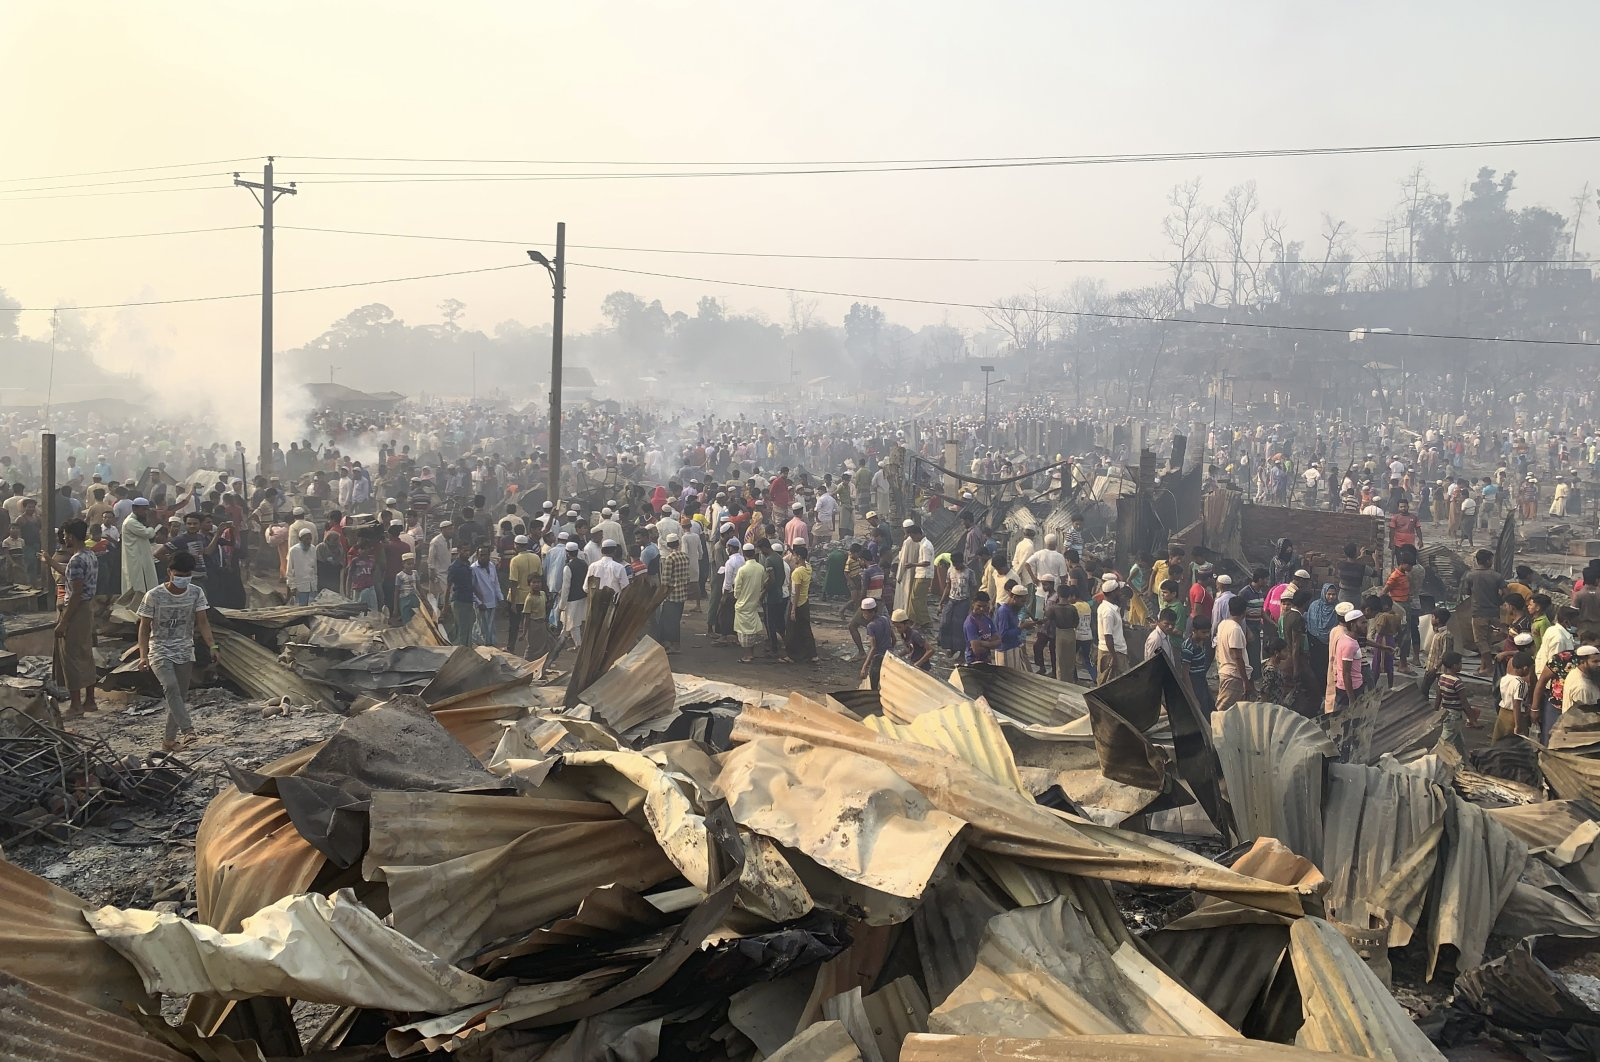 Rohingya refugees look at the remains of Monday's fire at the Rohingya refugee camp in Balukhali, southern Bangladesh, March 23, 2021. (AP Photo)